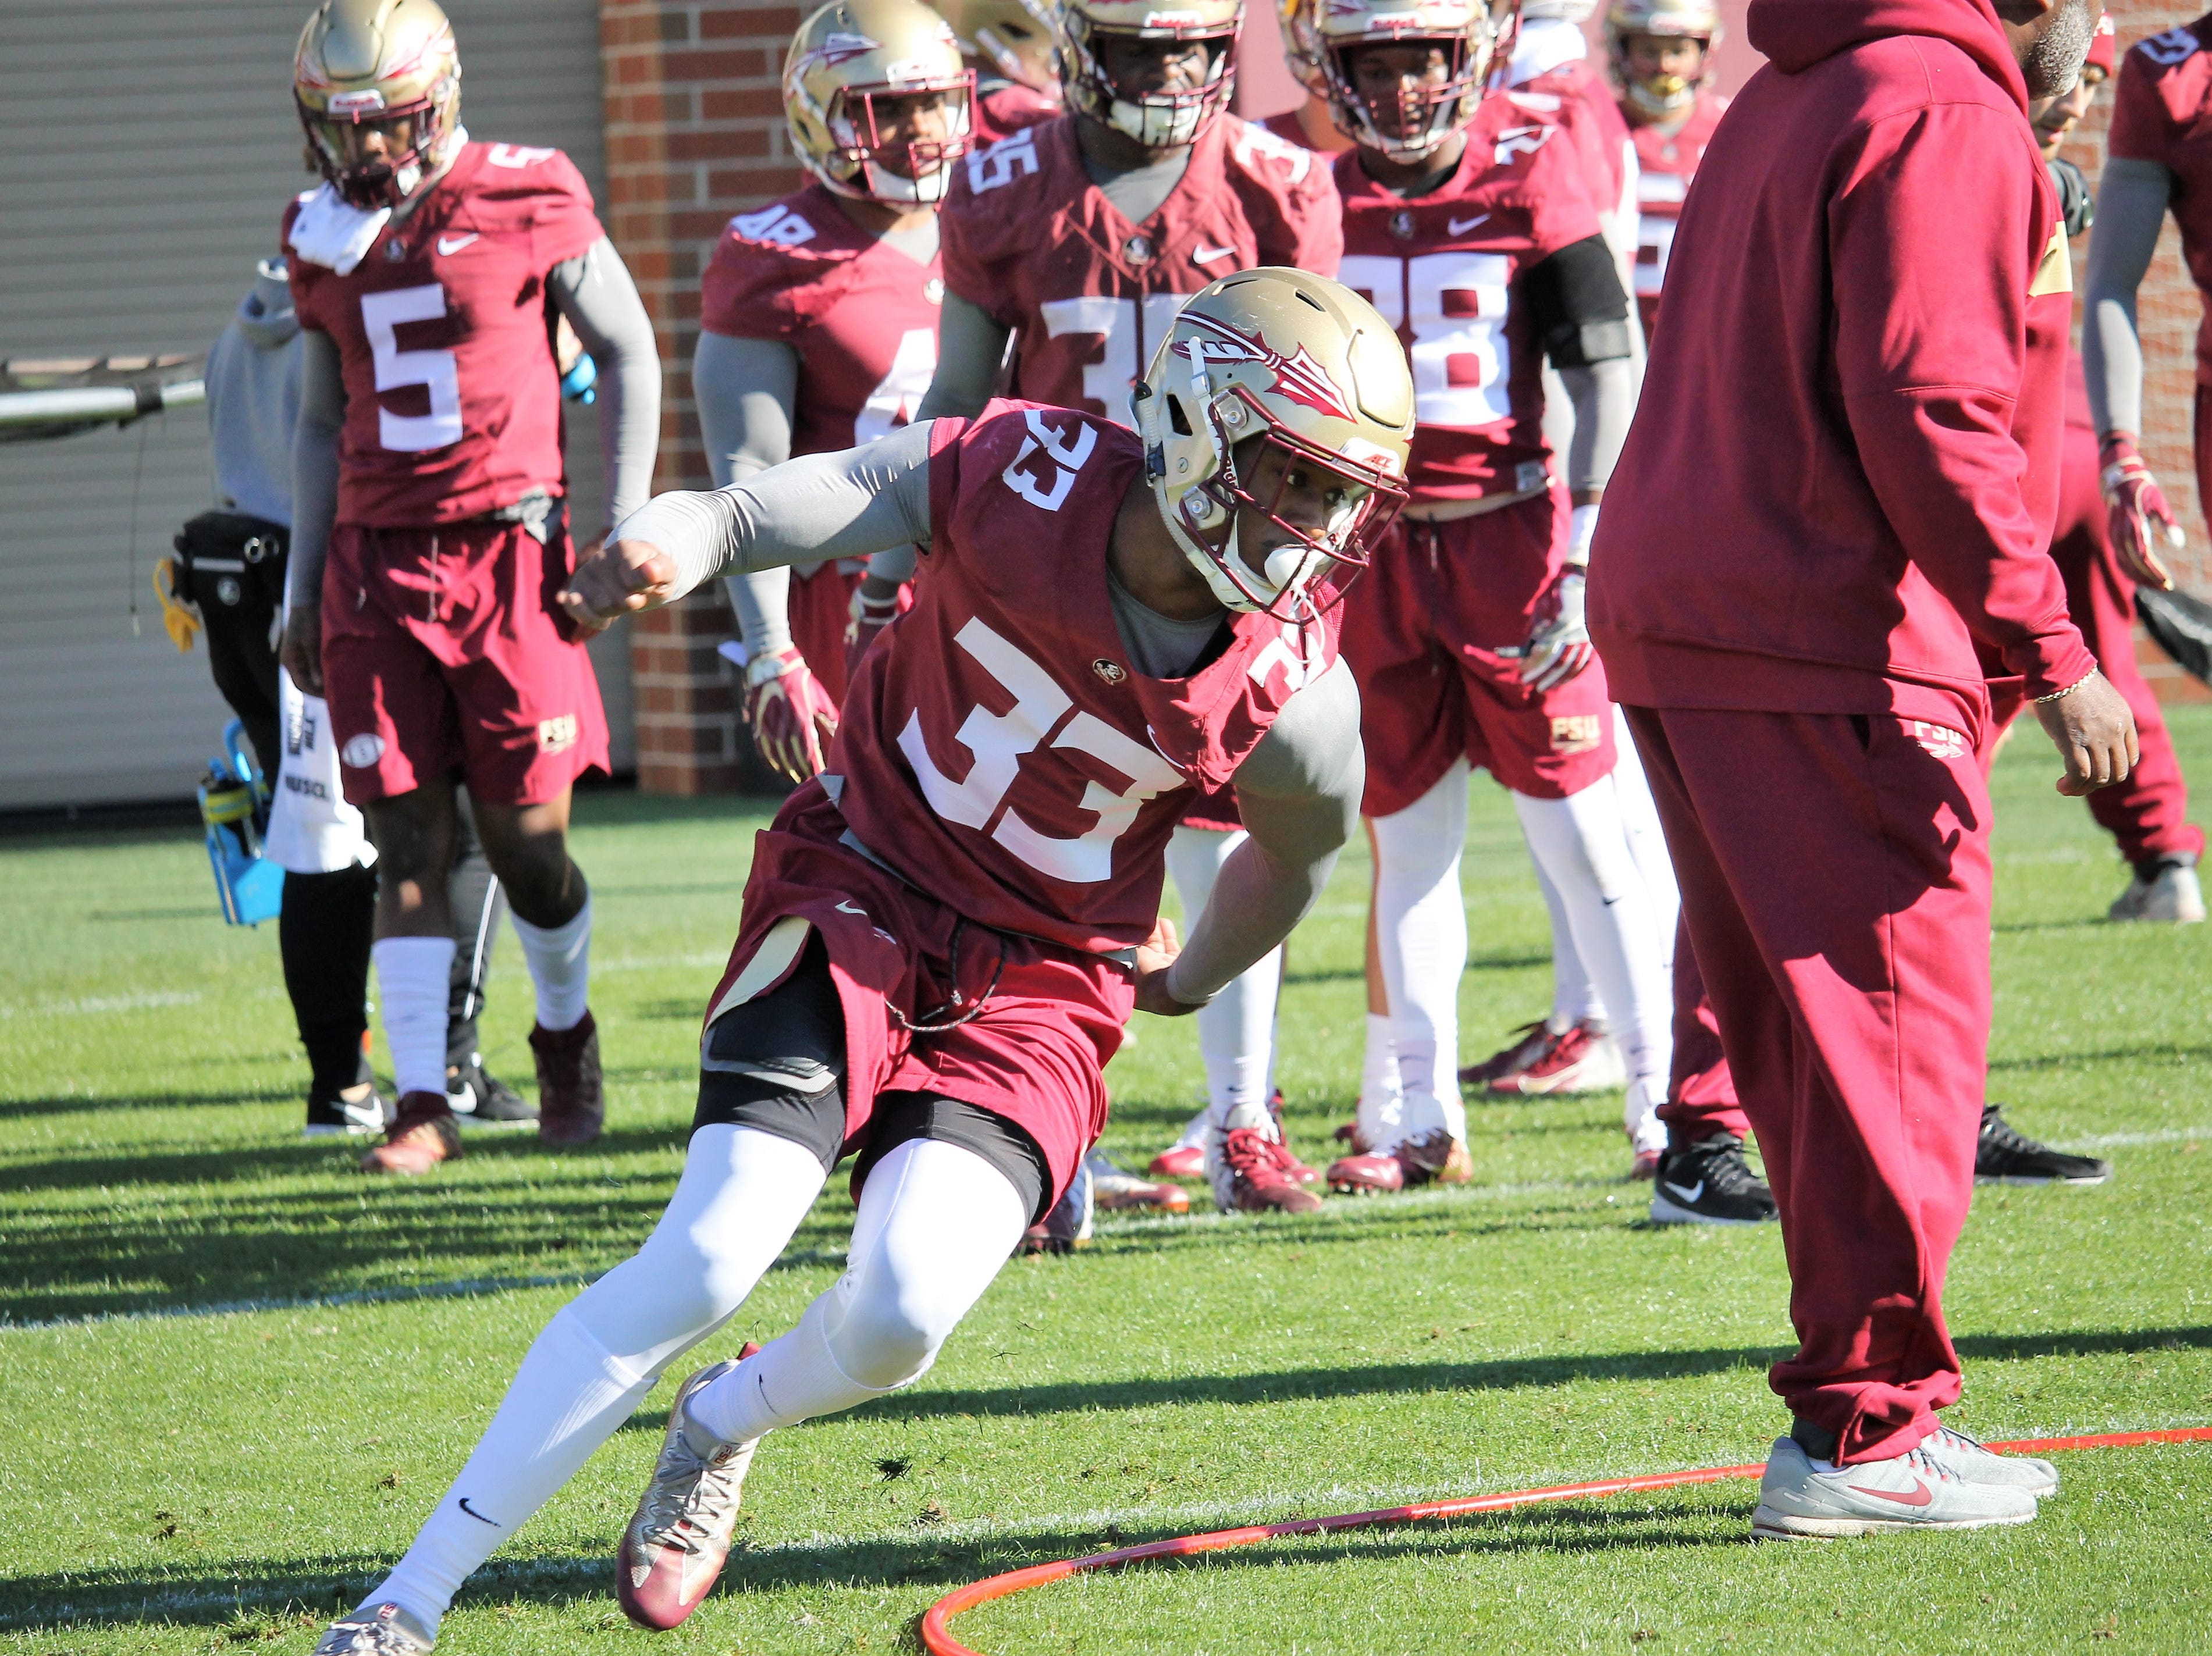 Linebacker Amari Gainer at FSU football practice on March 6, 2019.